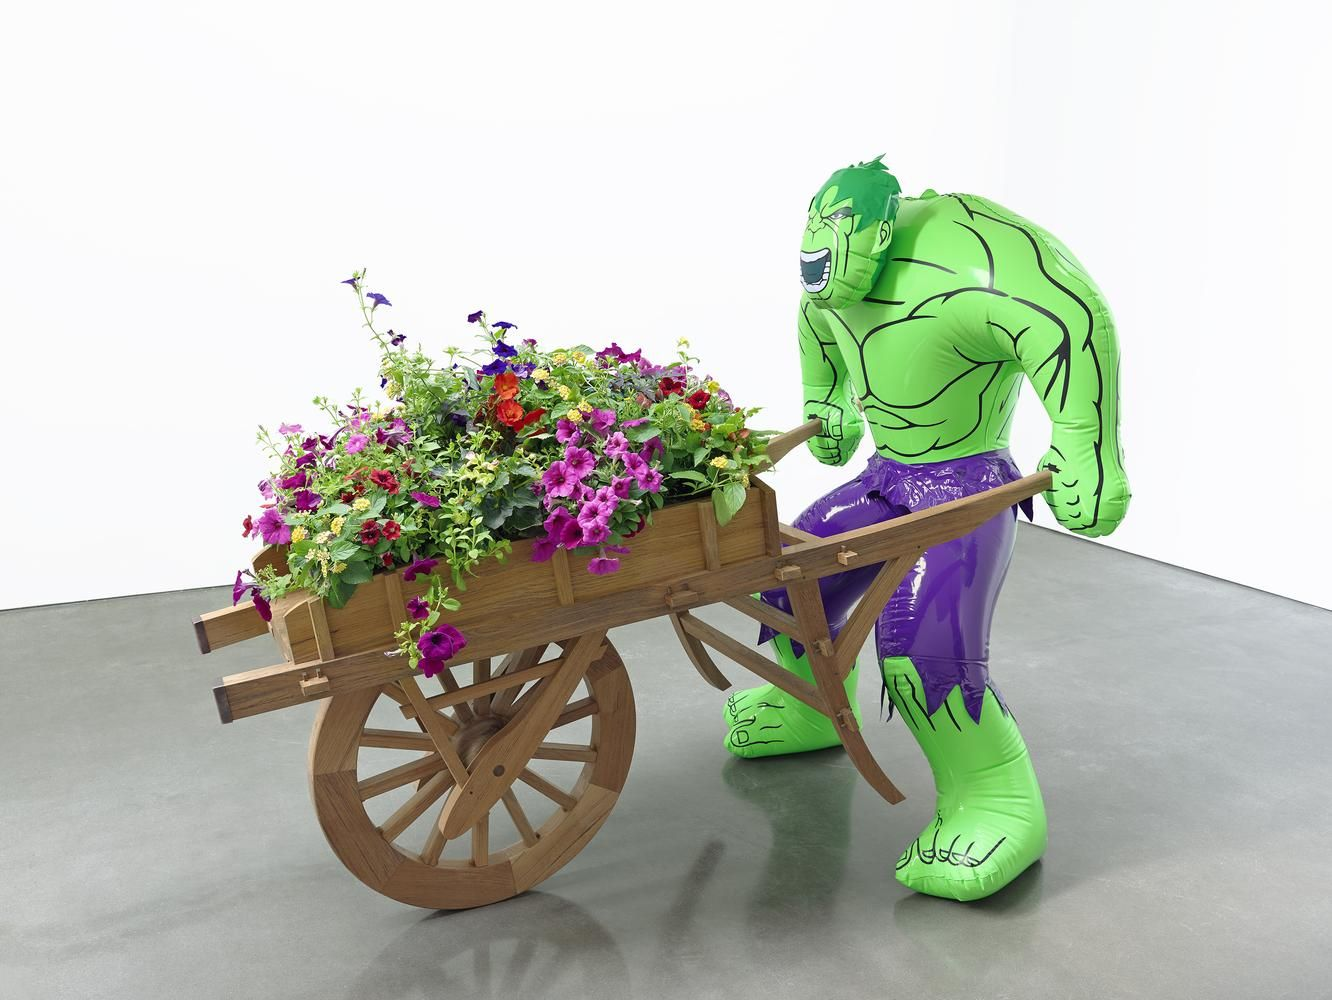 Jeff Koons Hulk (Wheelbarrow) 2004-2013 polychromed bronze, wood, copper, and live flowering plants 68 1/16 x 48 3/8 x 81 5/8 inches (172.9 x 122.9 x 207.3 cm)